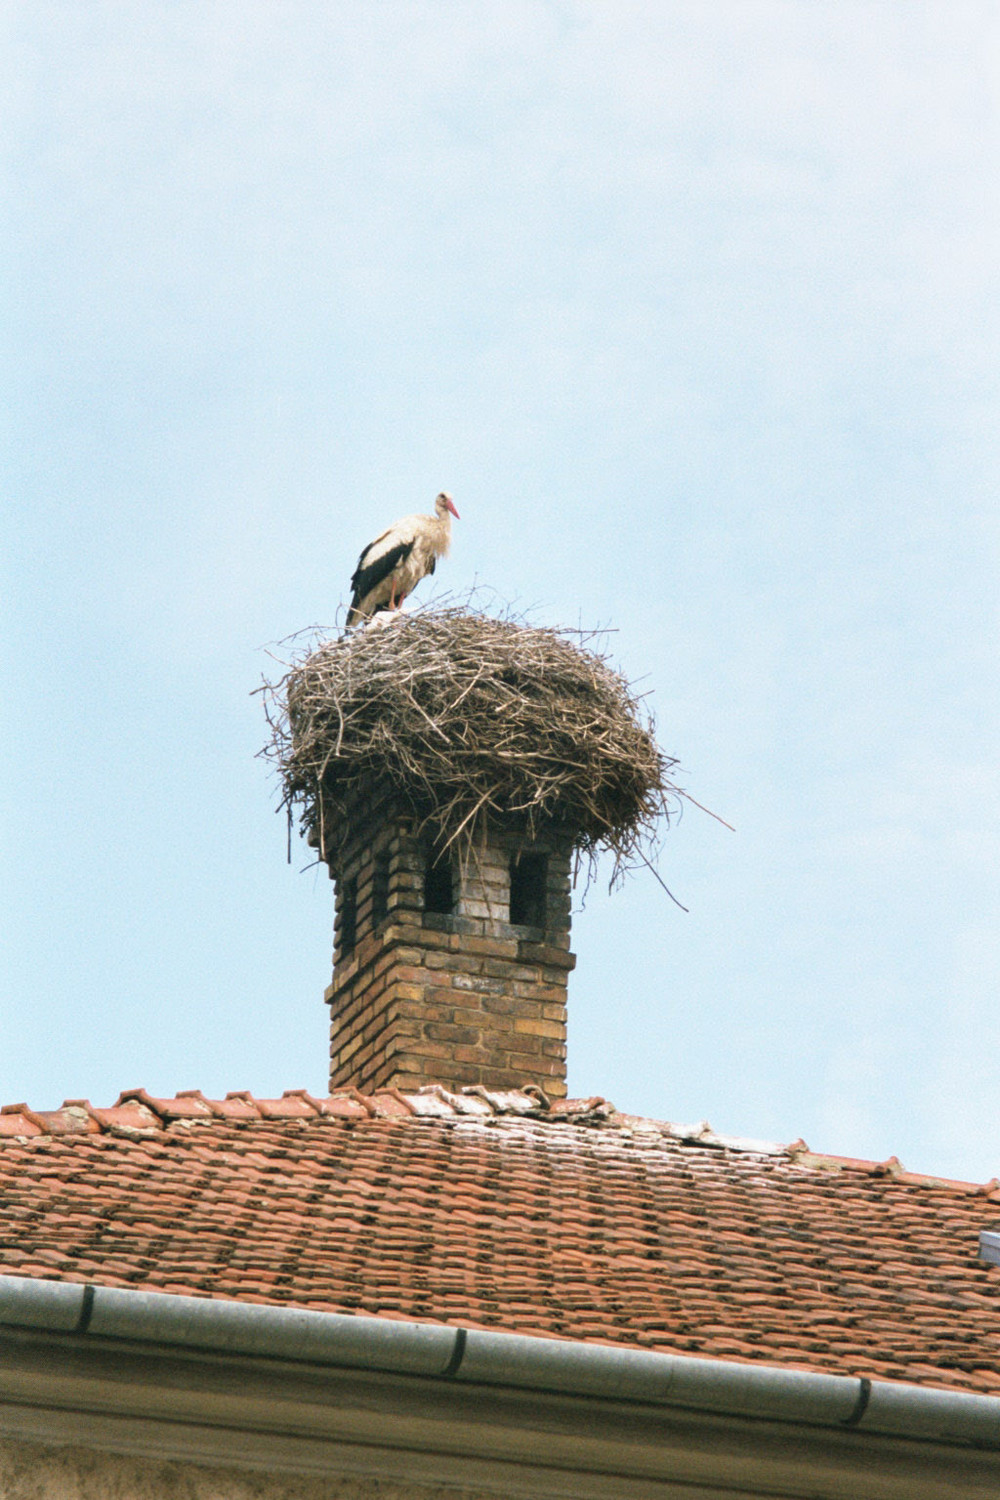 A stork on a Hungarian chimney